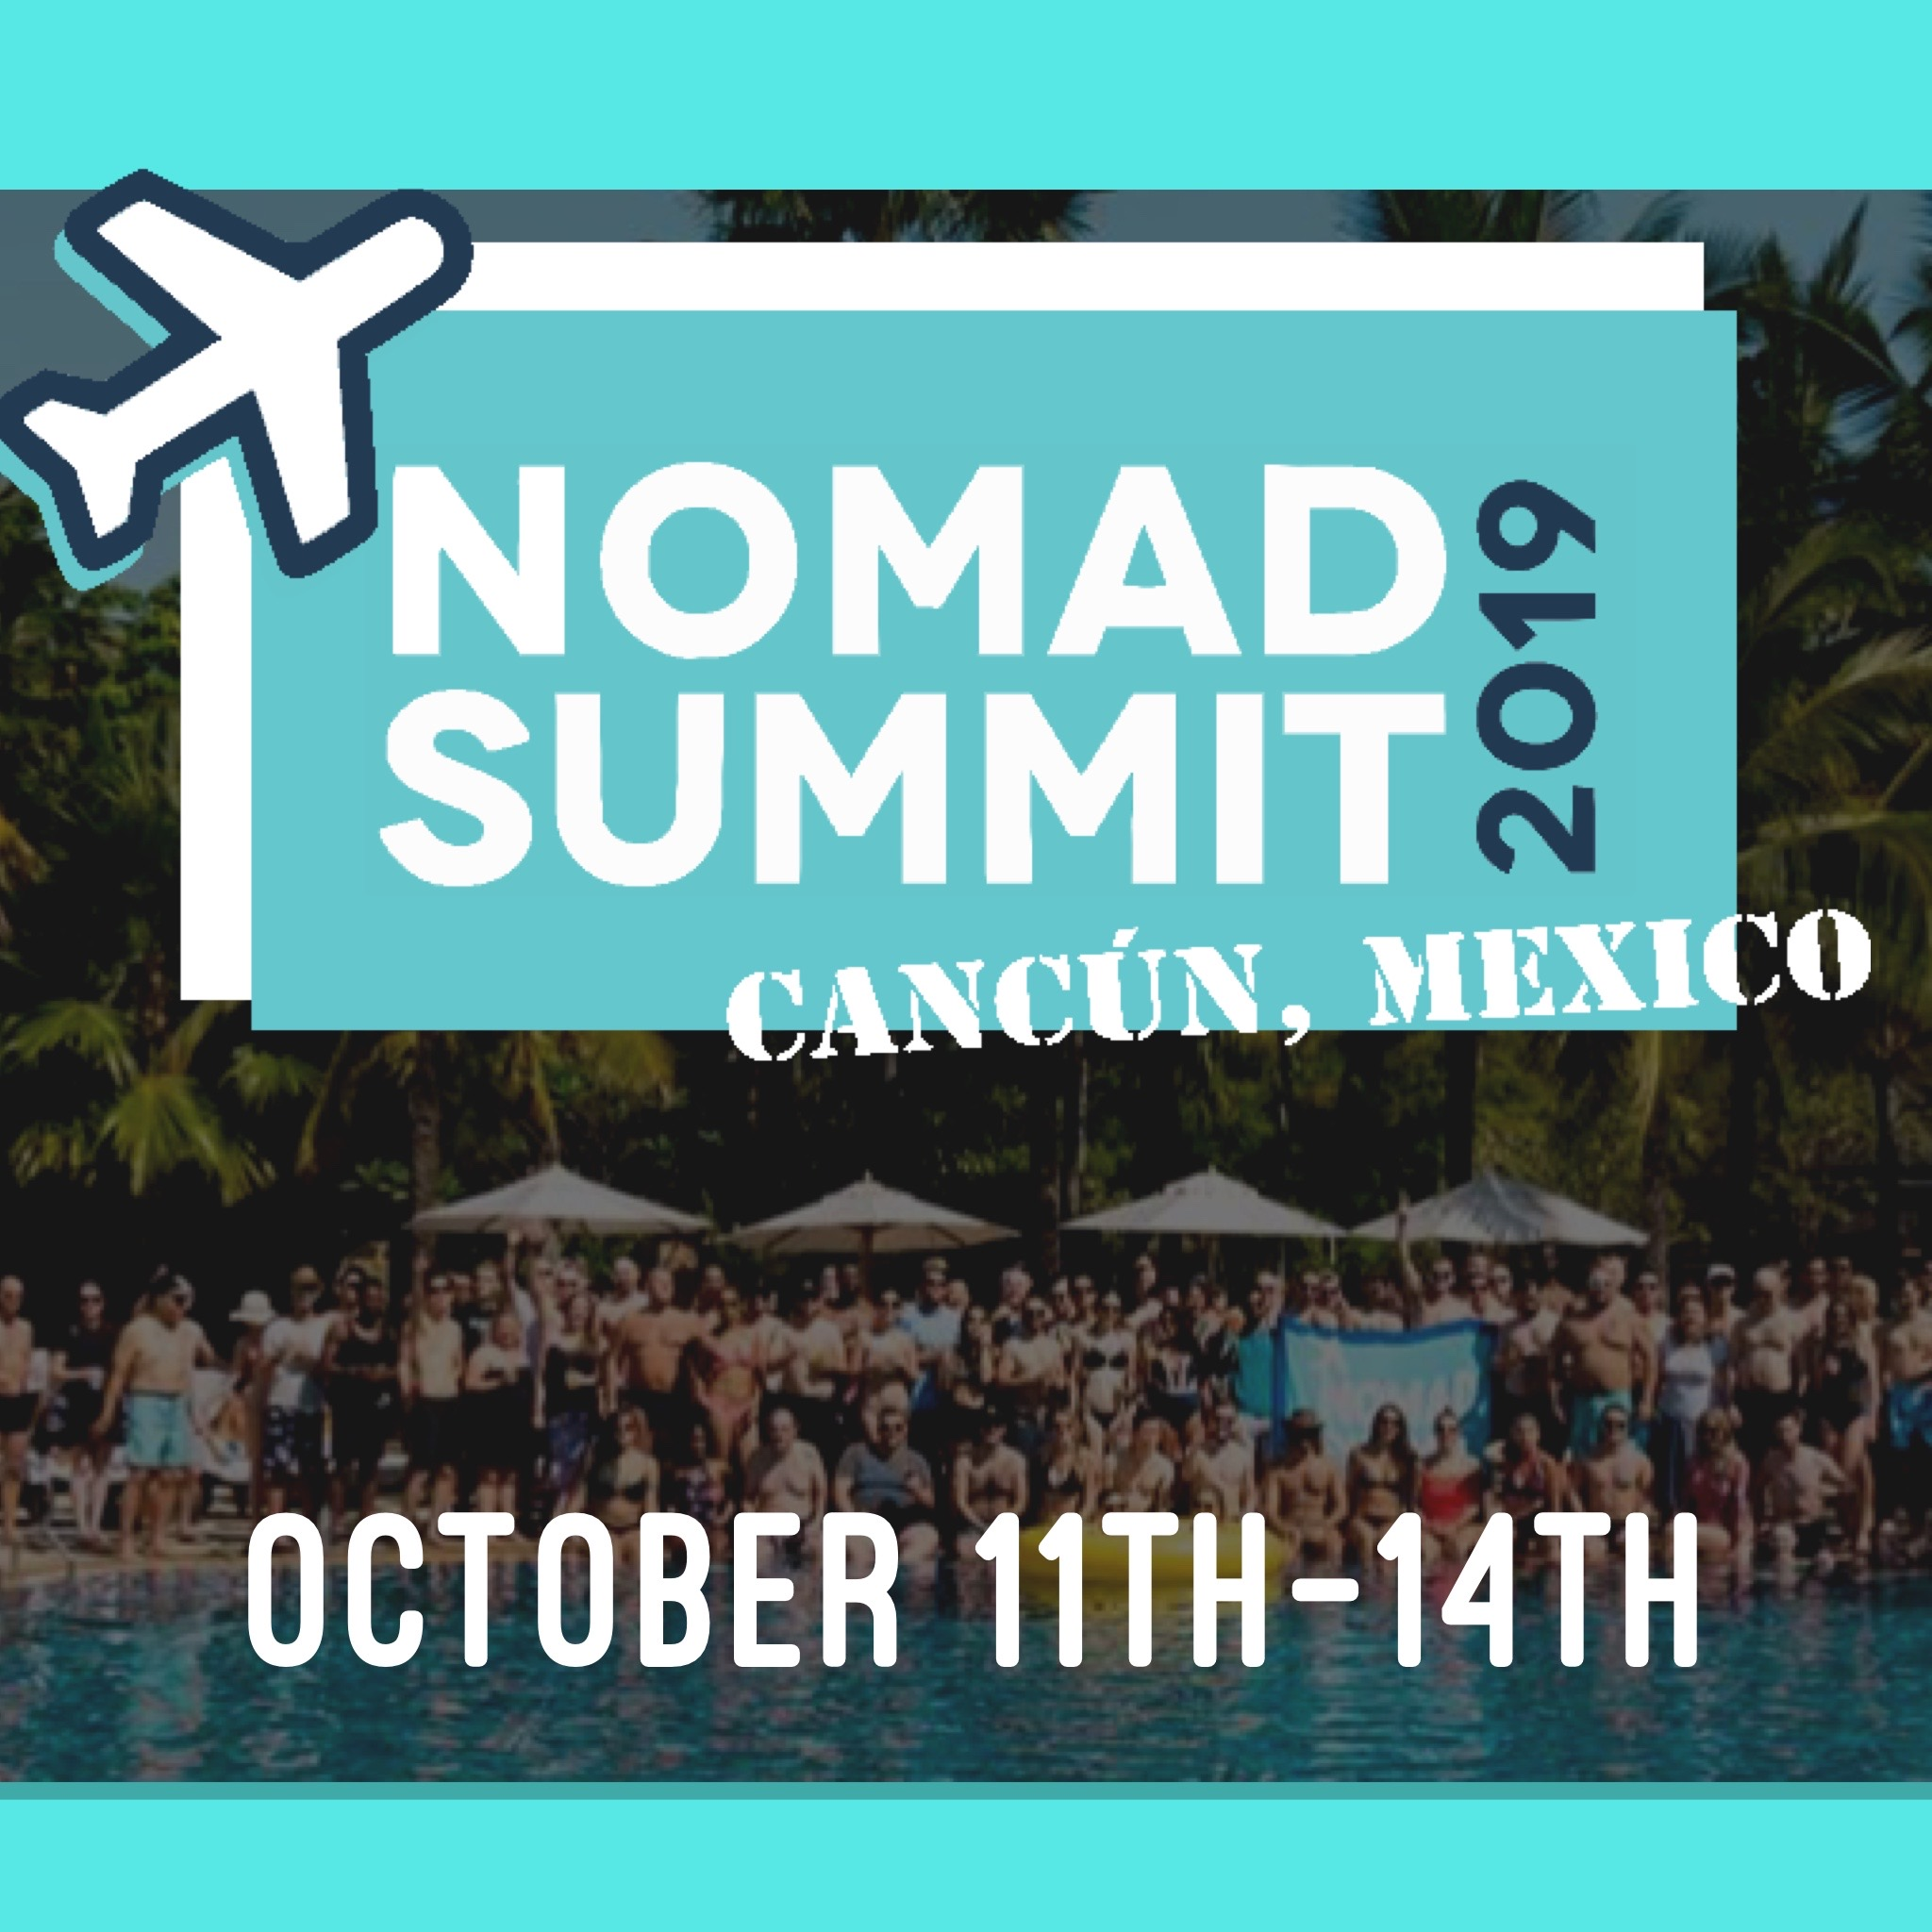 Special discount to attend Nomad Summit October 11th-14th in Cancun! -